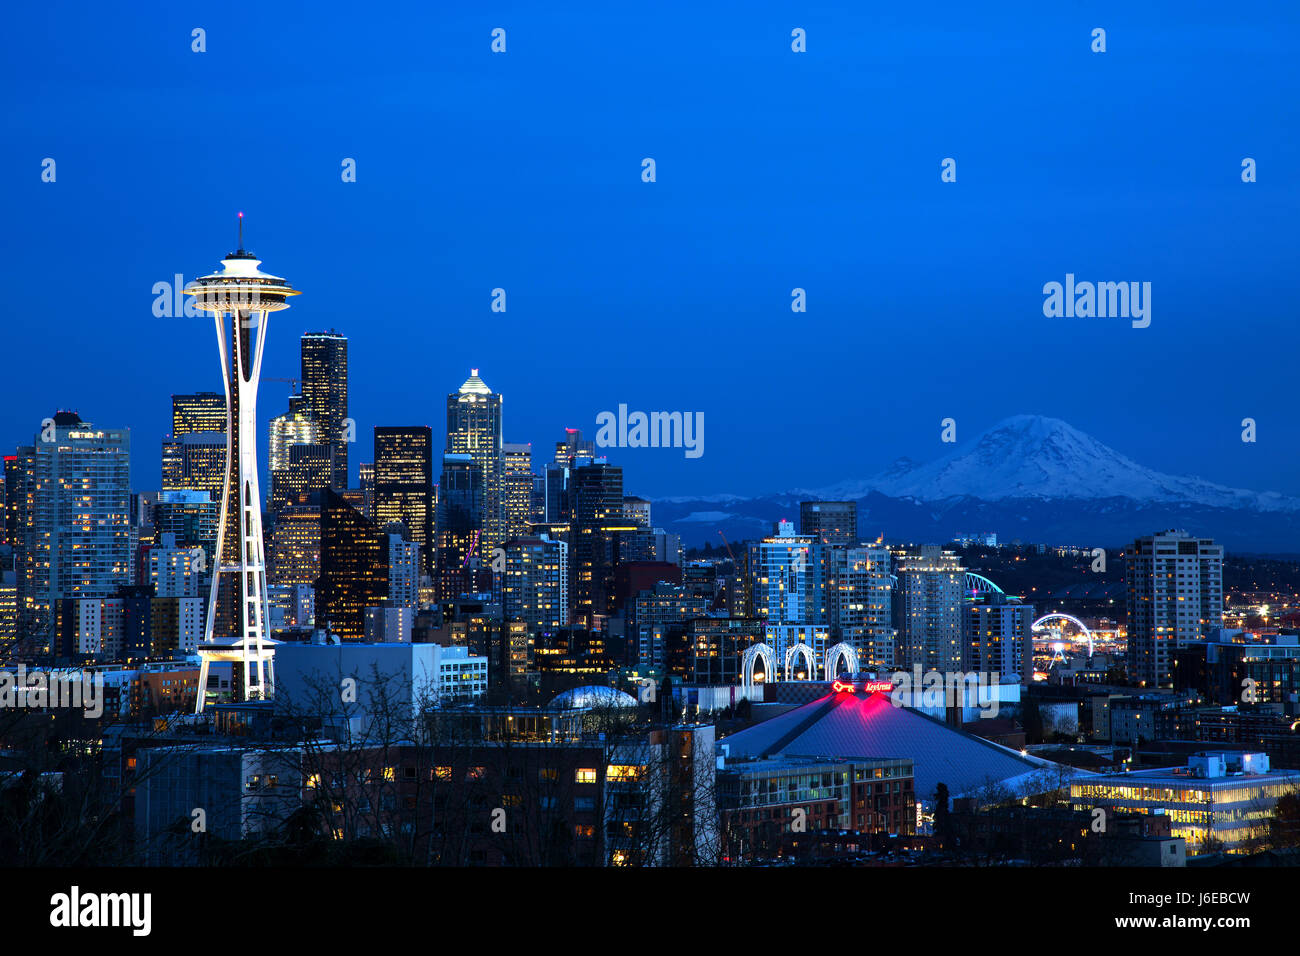 Seattle skyline with the Space Needle and Mt. Rainier - Stock Image